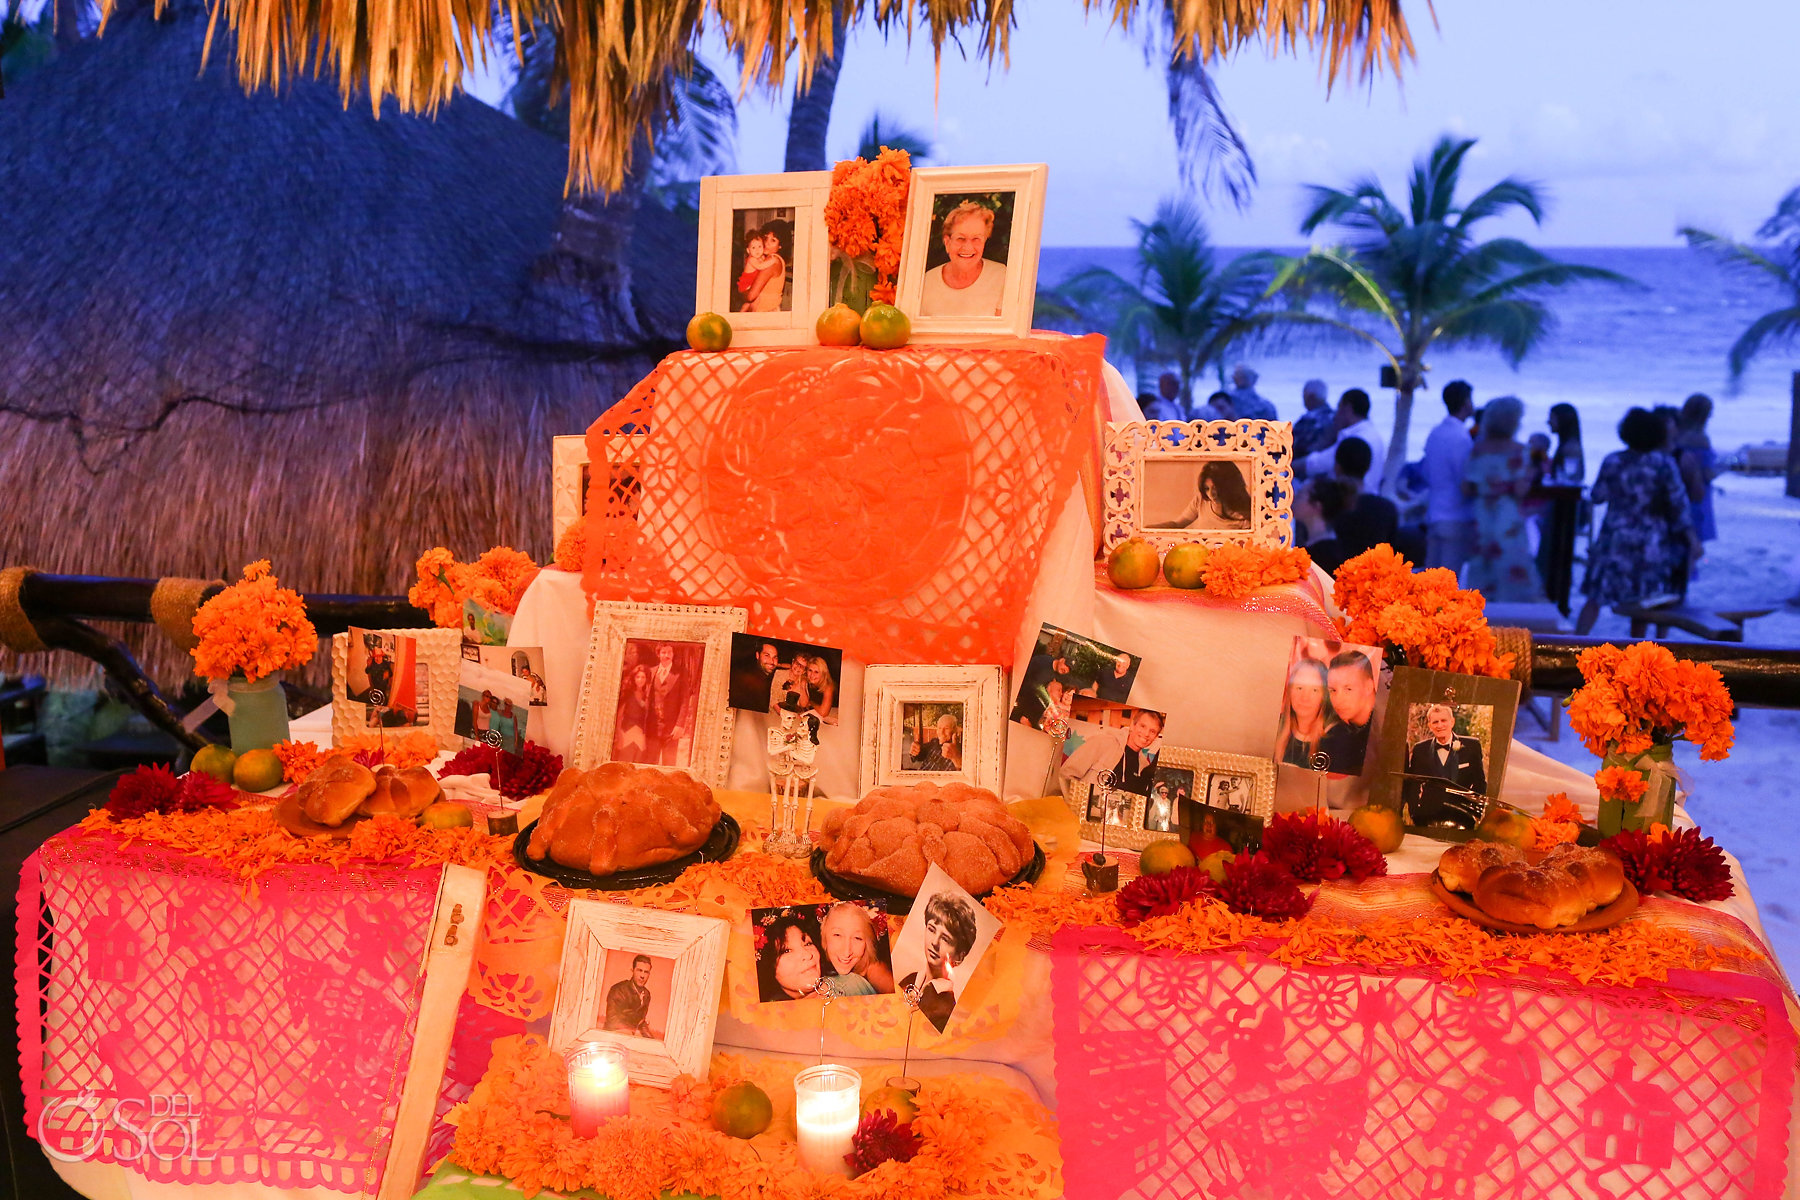 Day of the dead altar Mexico wedding reception tribute ideas